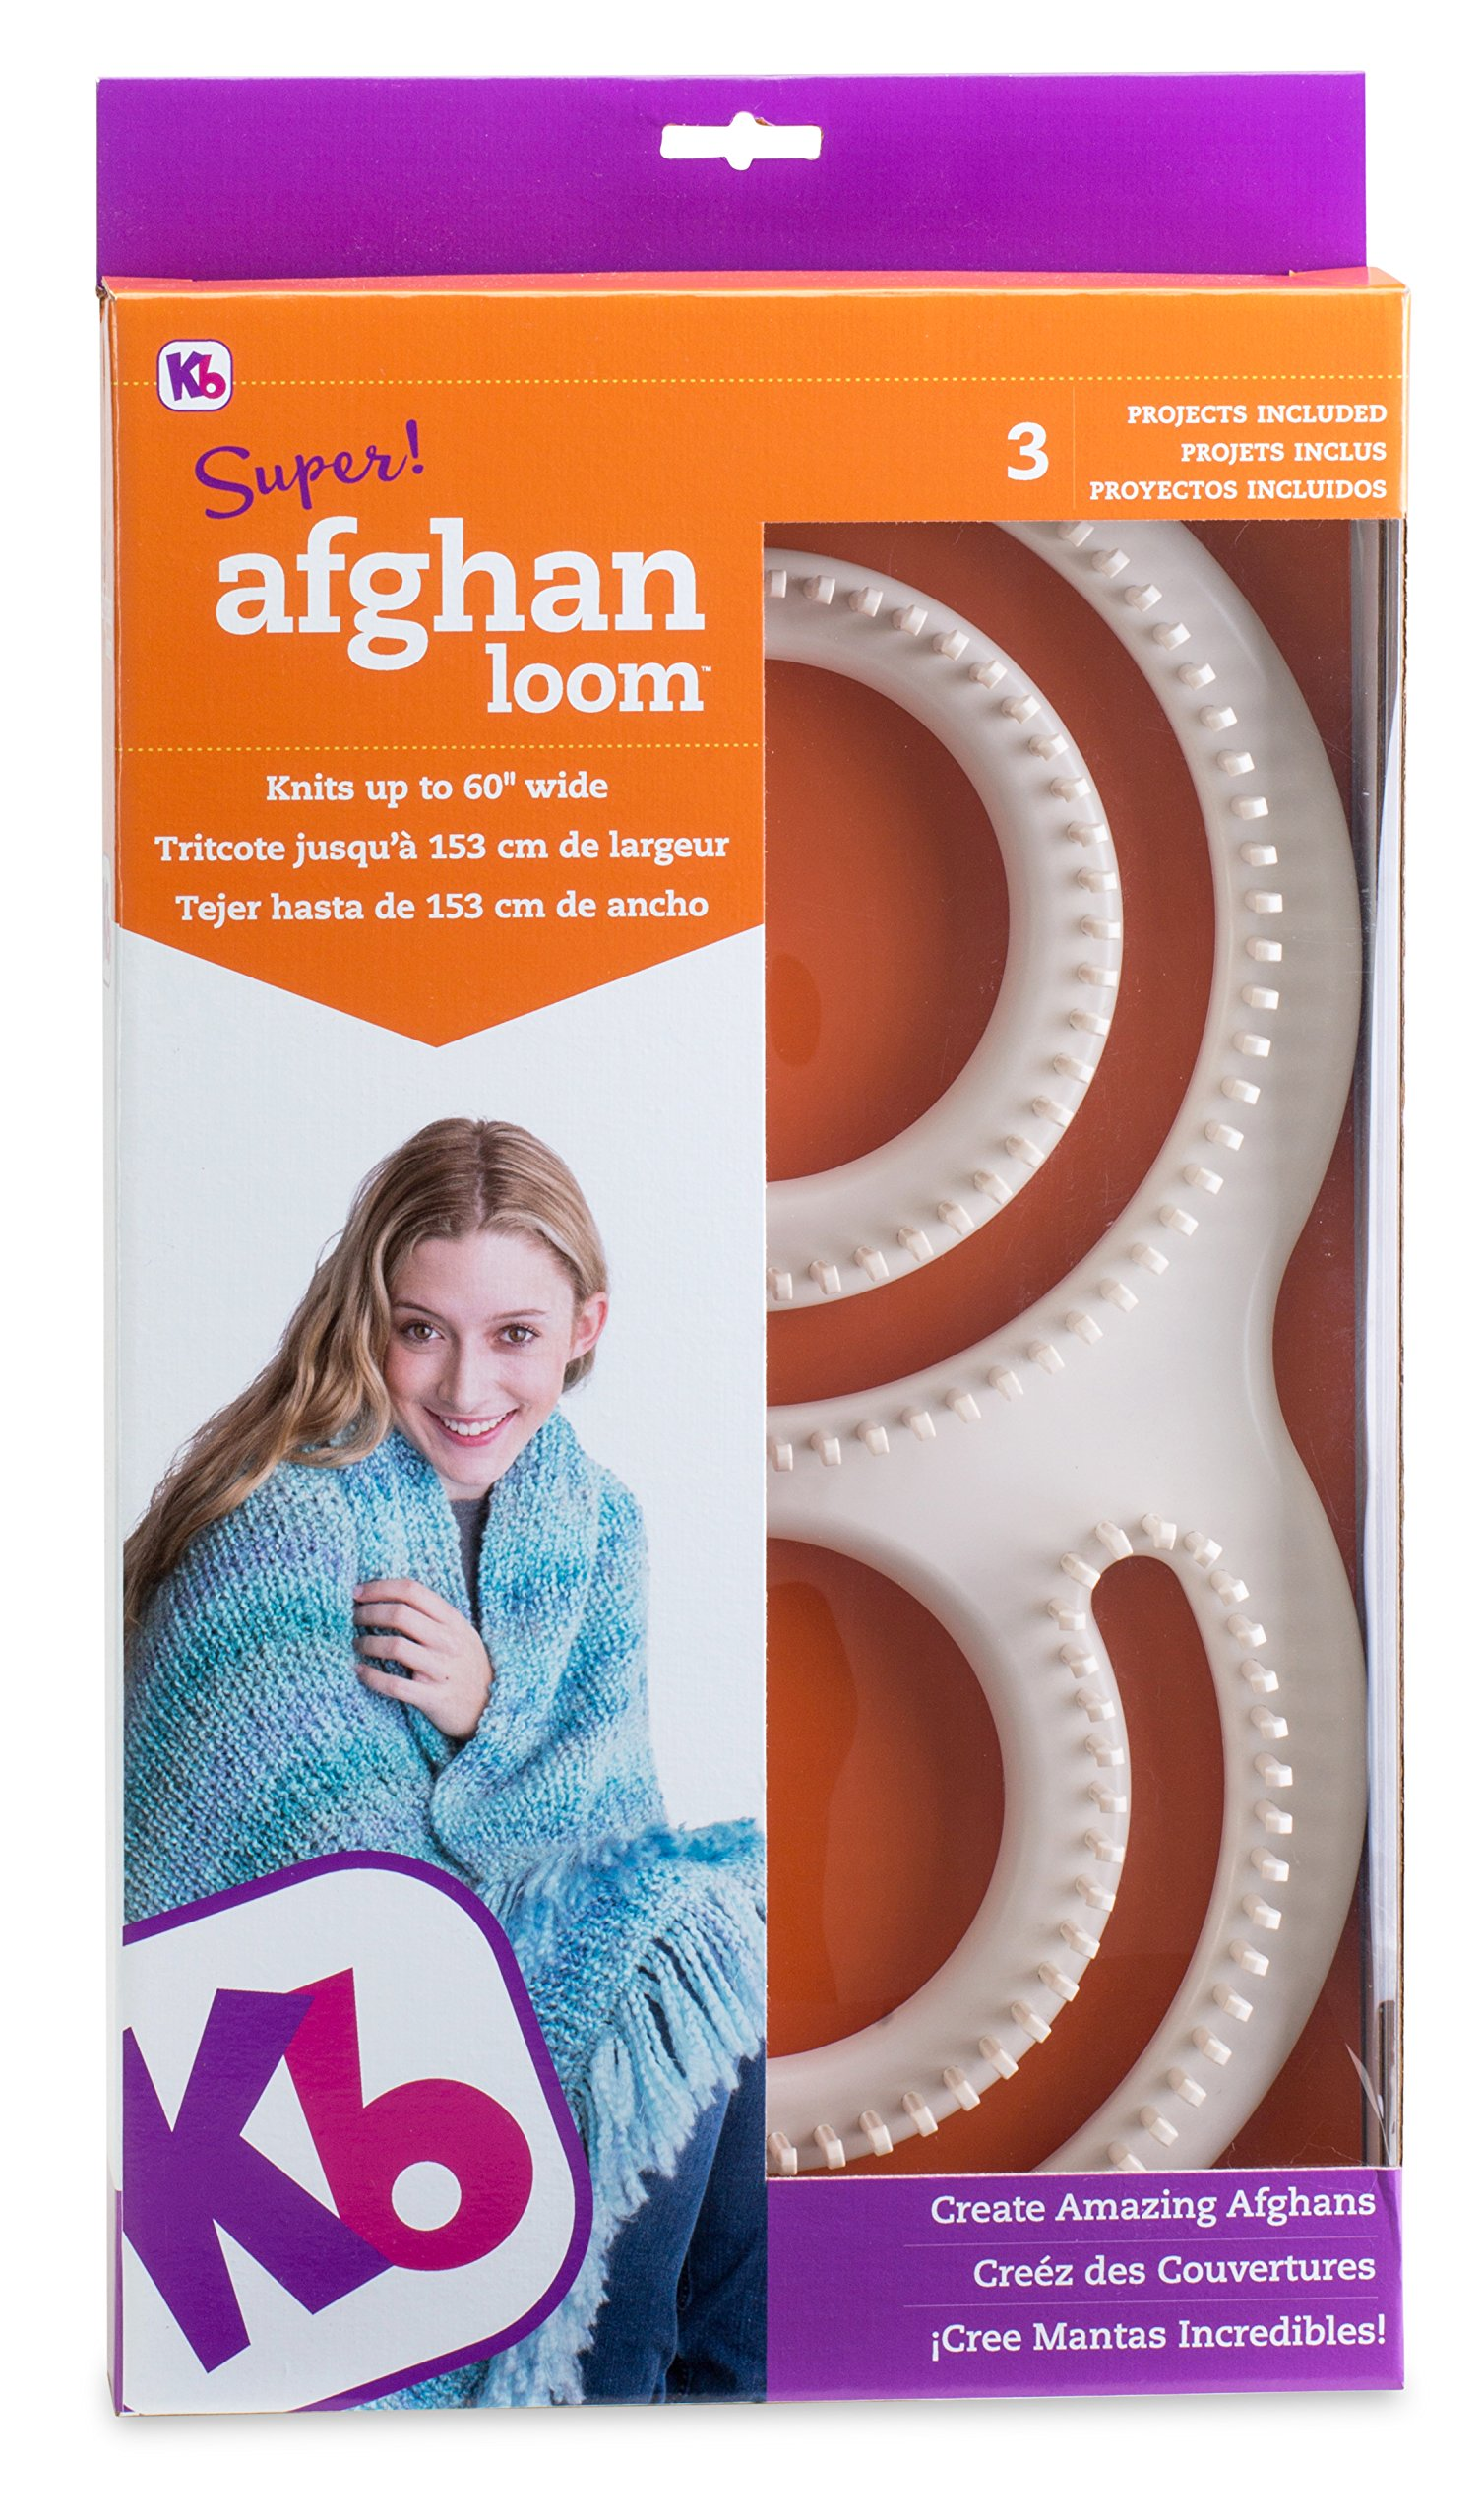 Authentic Knitting Board Afghan Loom product image